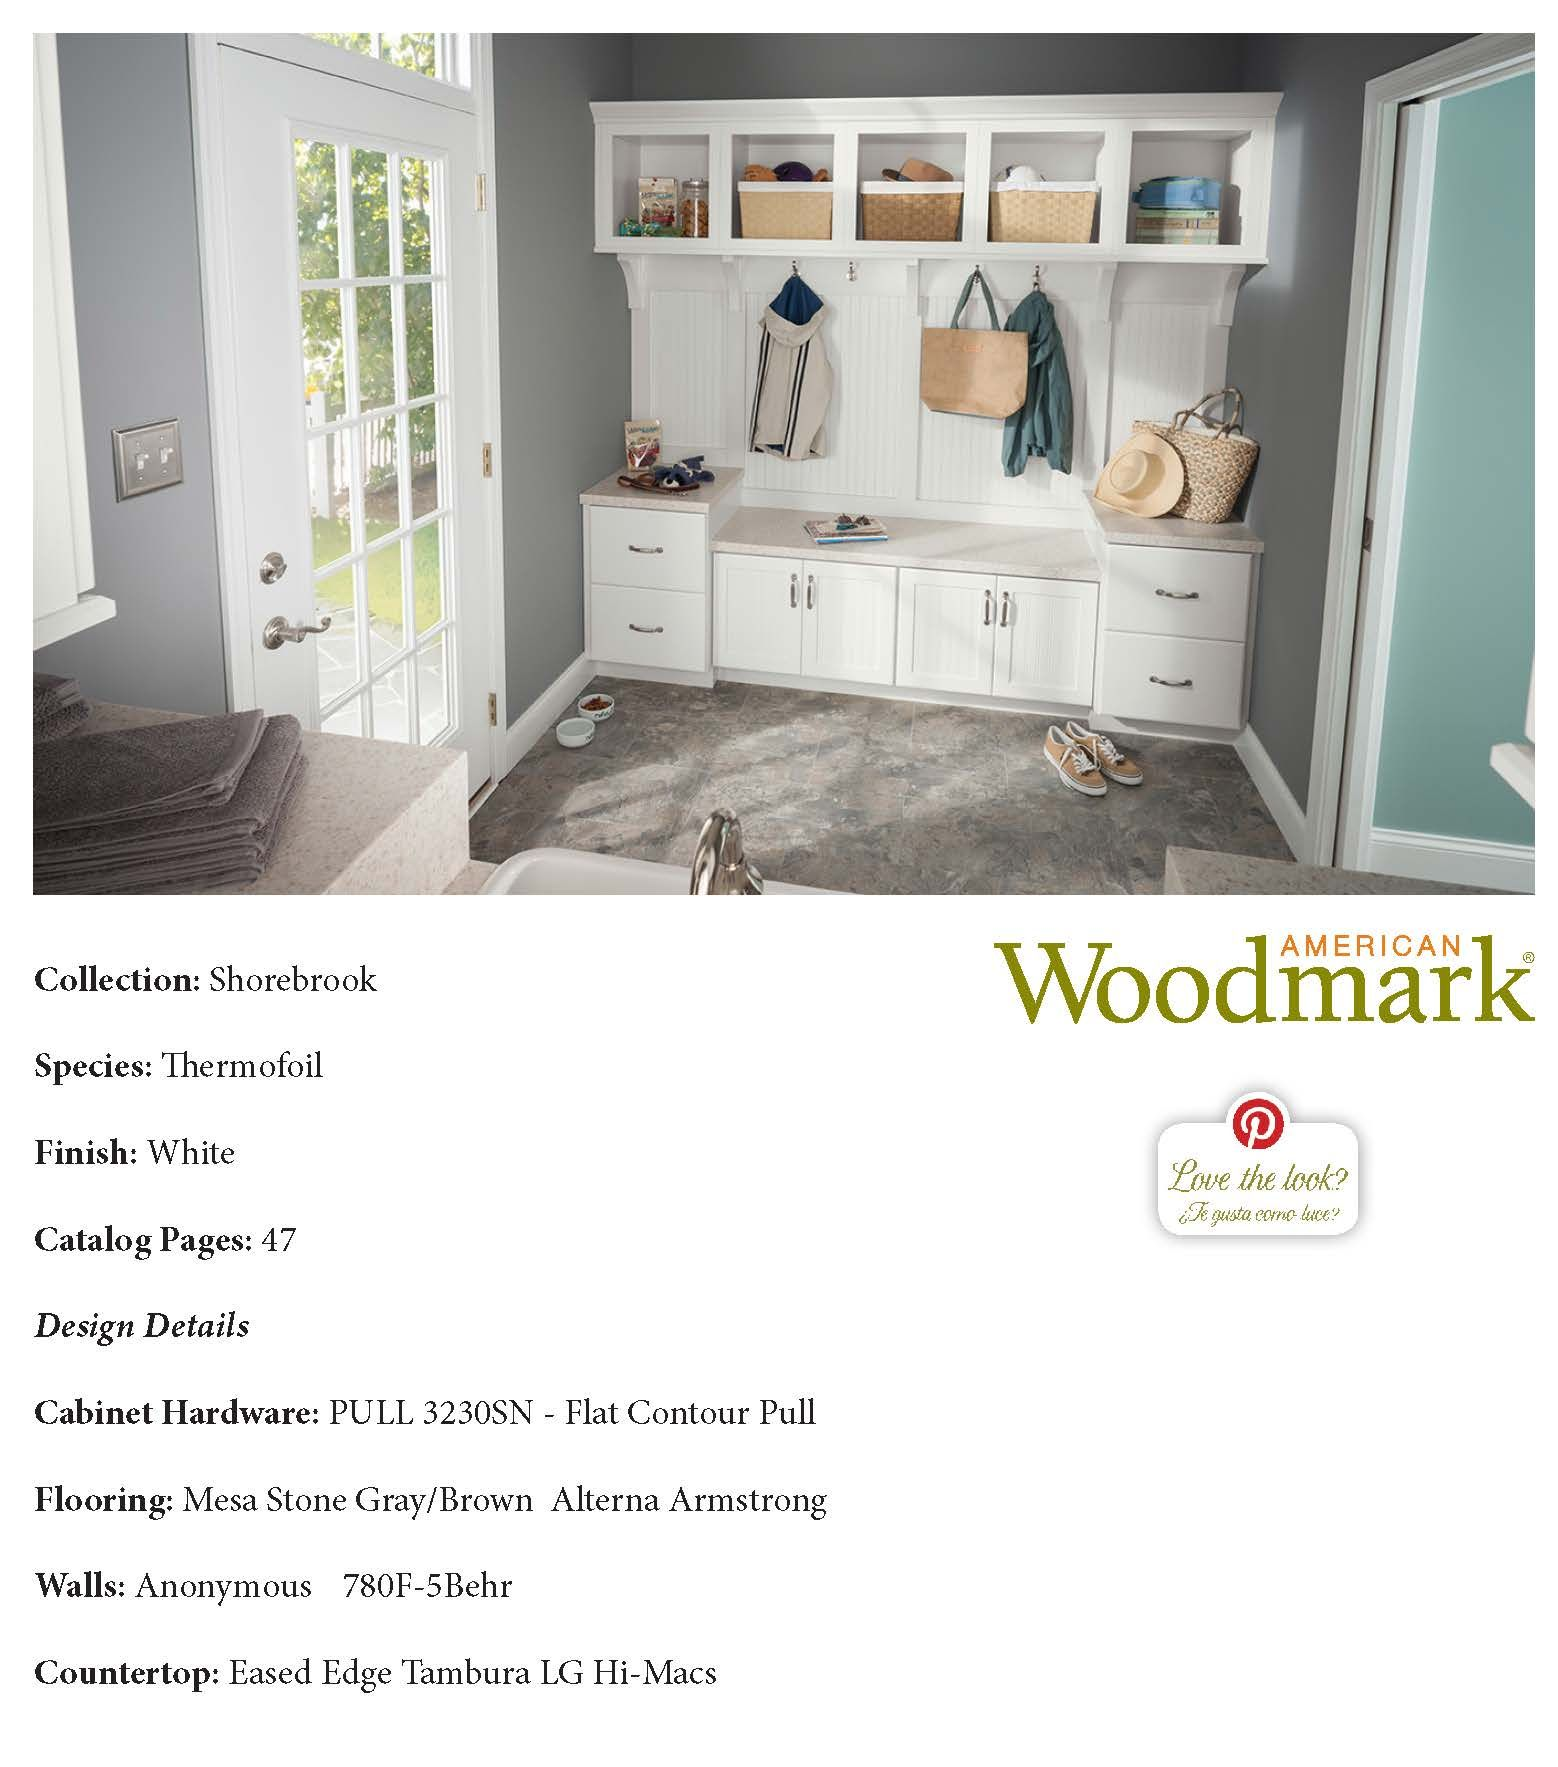 Shorebrook thermofoil white mud room american woodmark pinterest